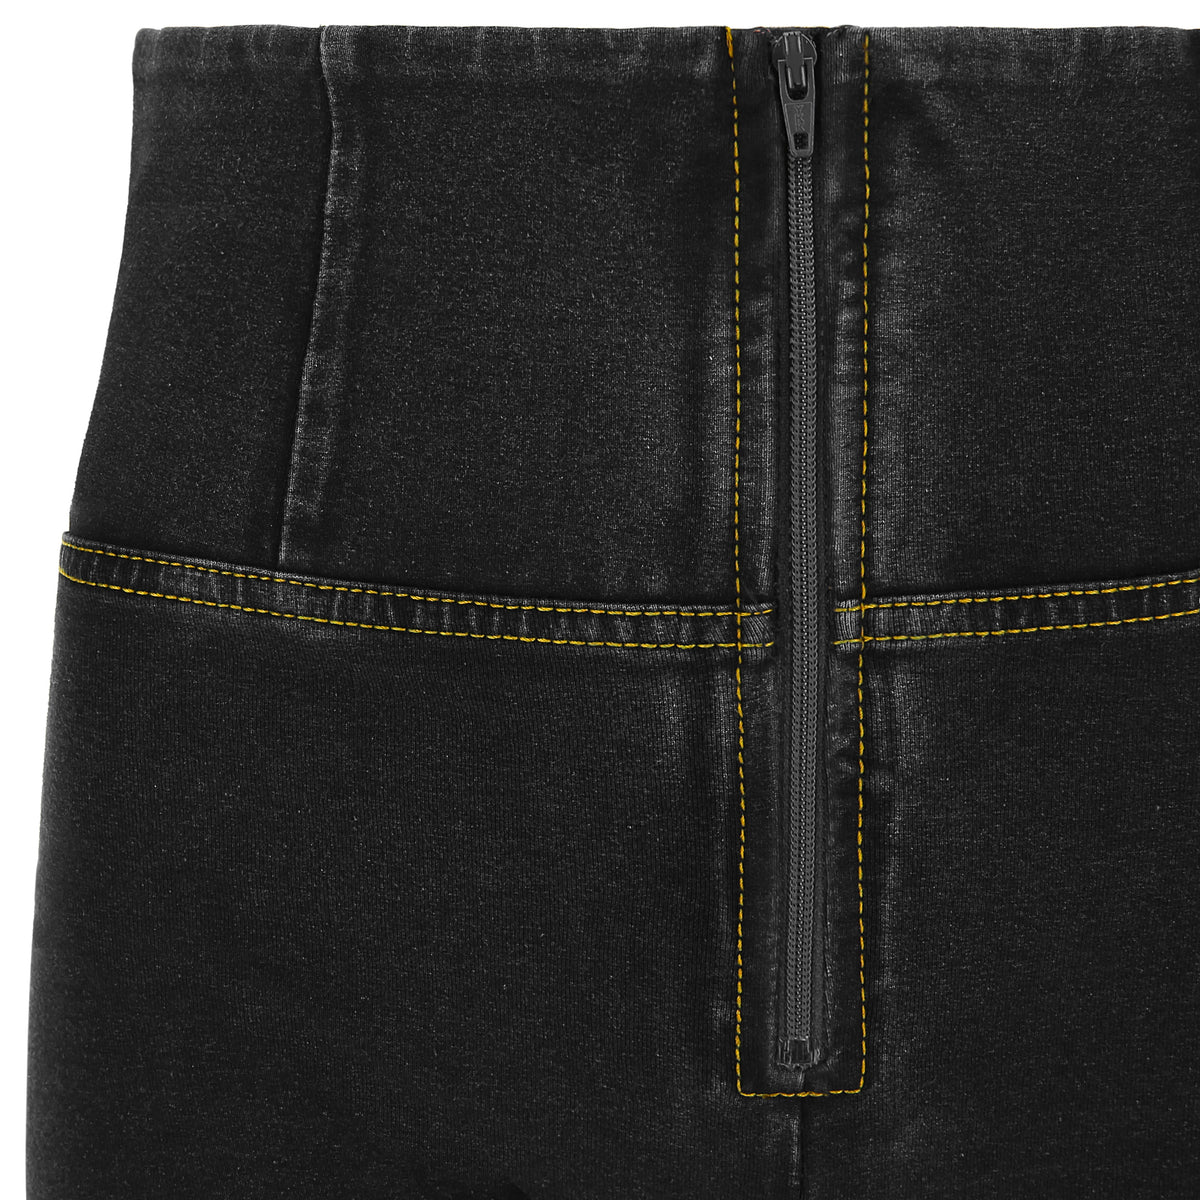 BLACK DENIM YELLOW STITCH HIGH WAIST SELF TONE ZIP